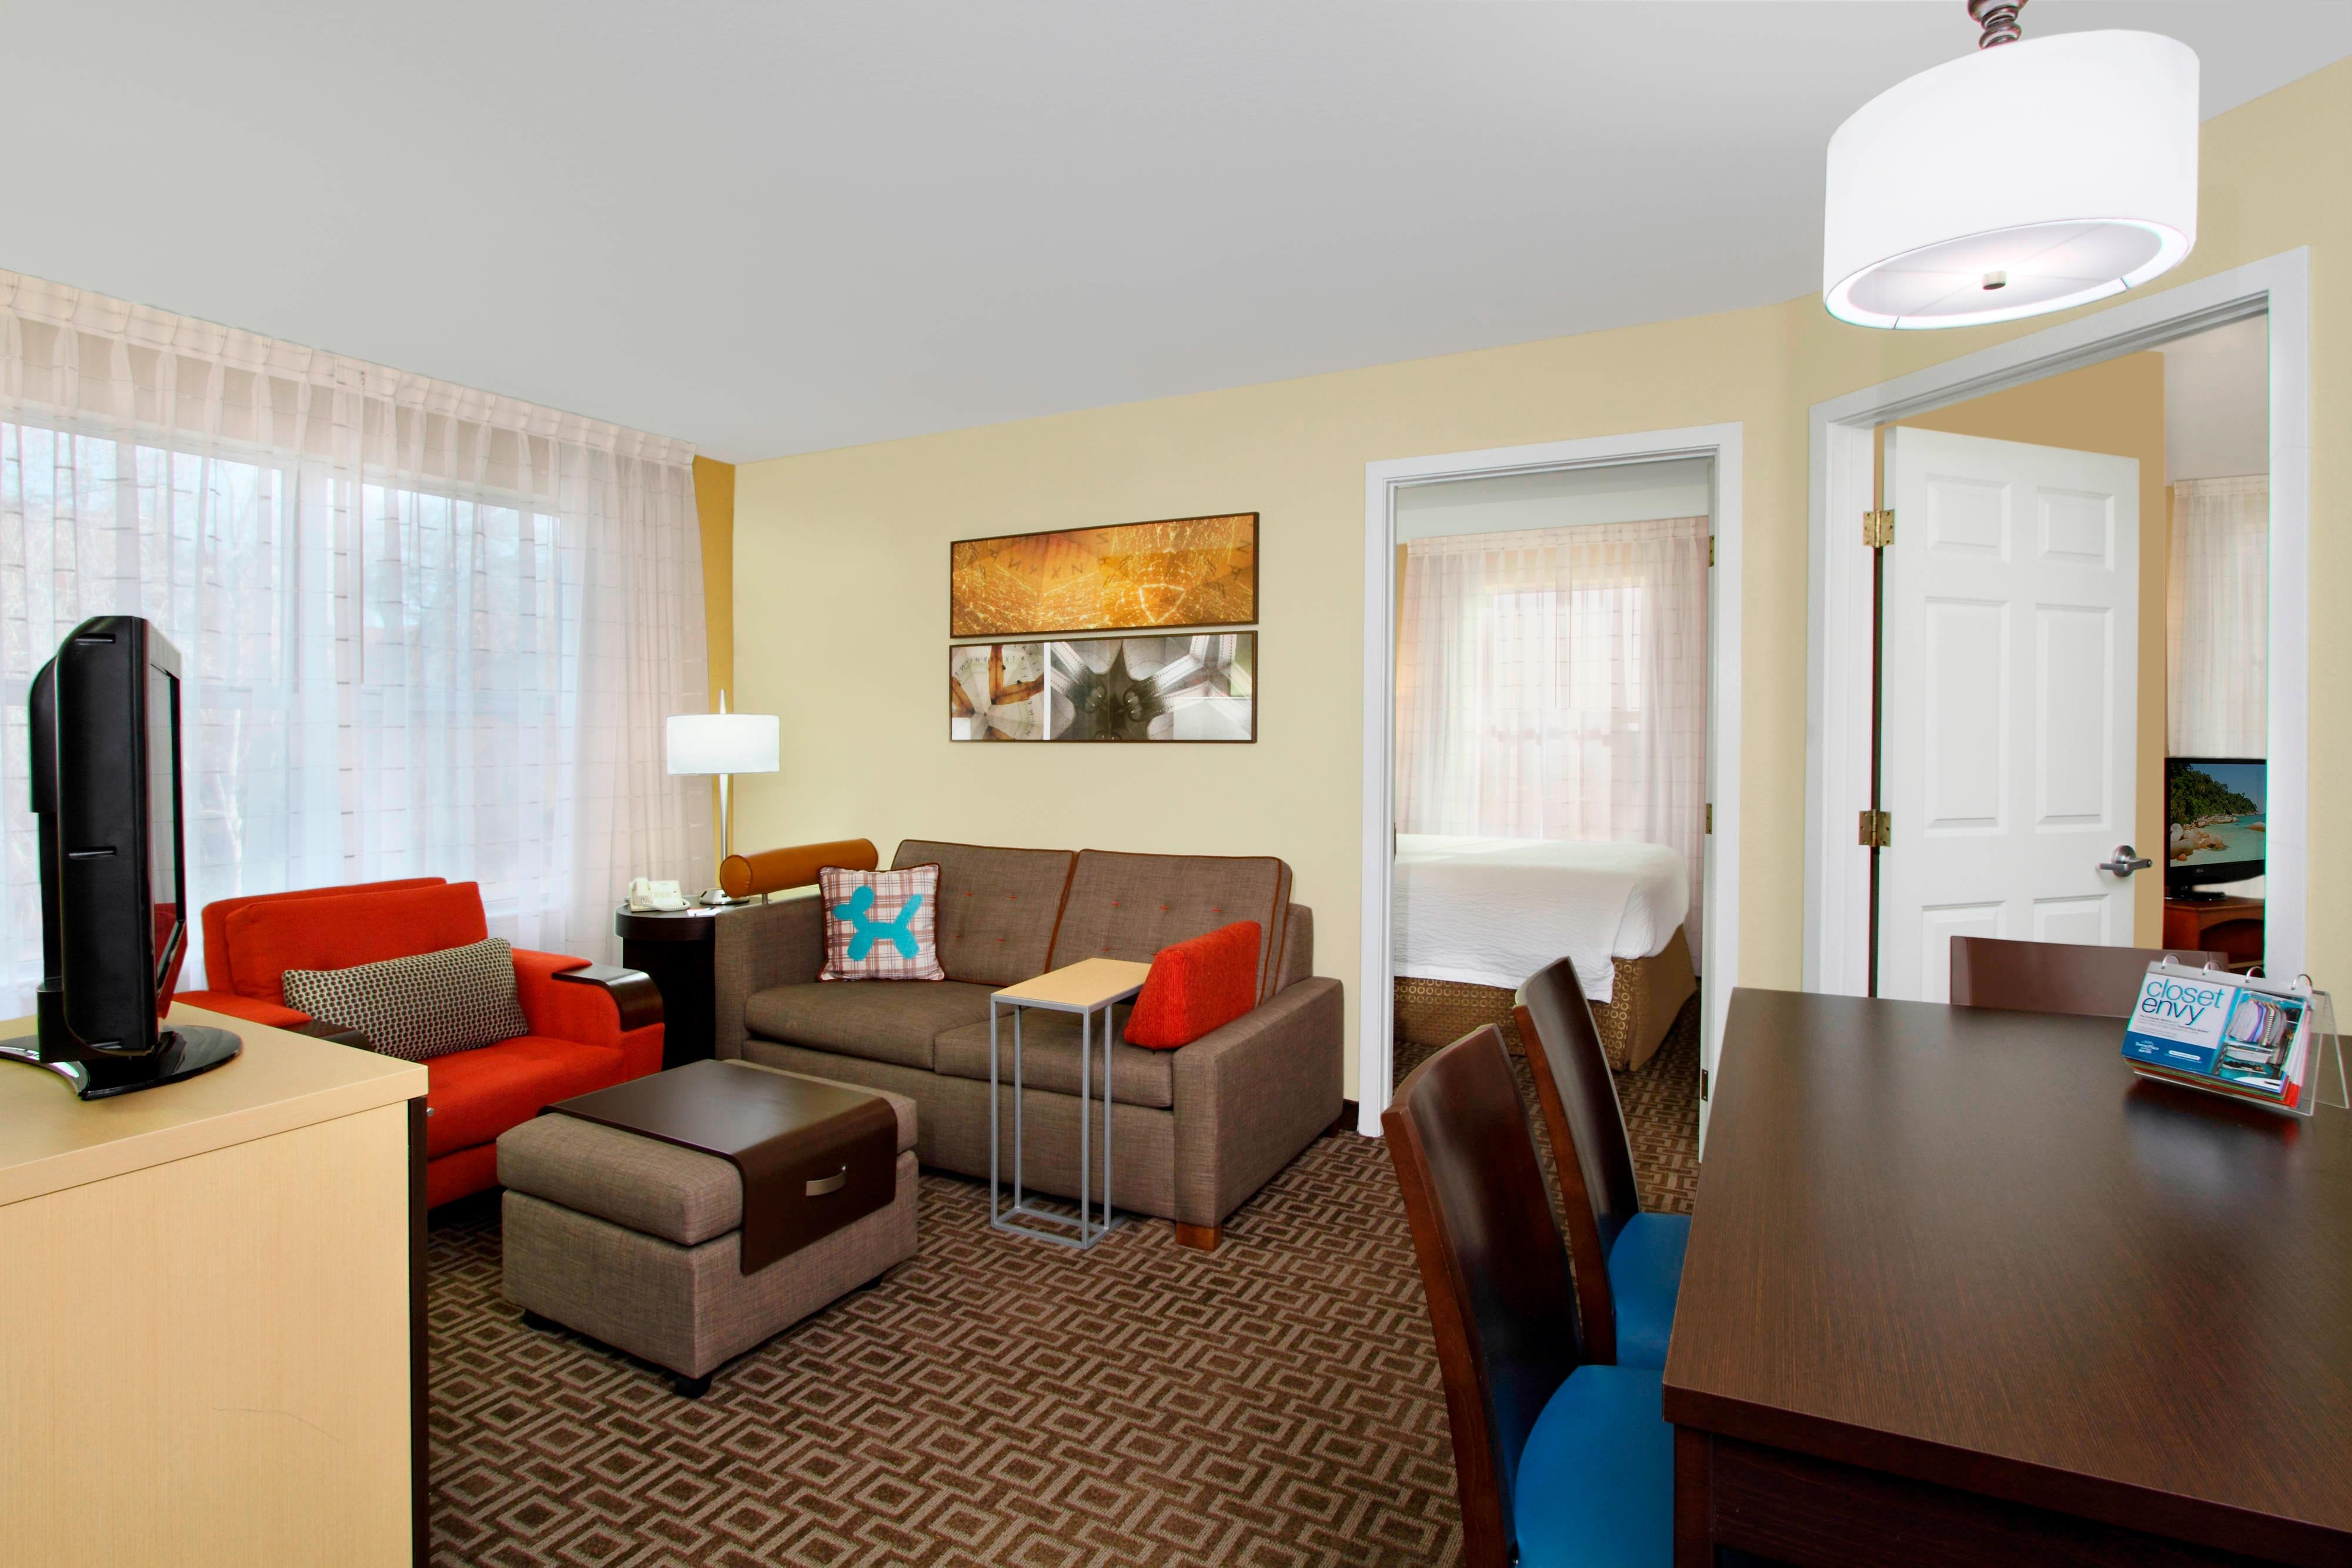 Hotels in silicon valley towneplace suites newark ca hotel 2 bedroom suite malvernweather Choice Image